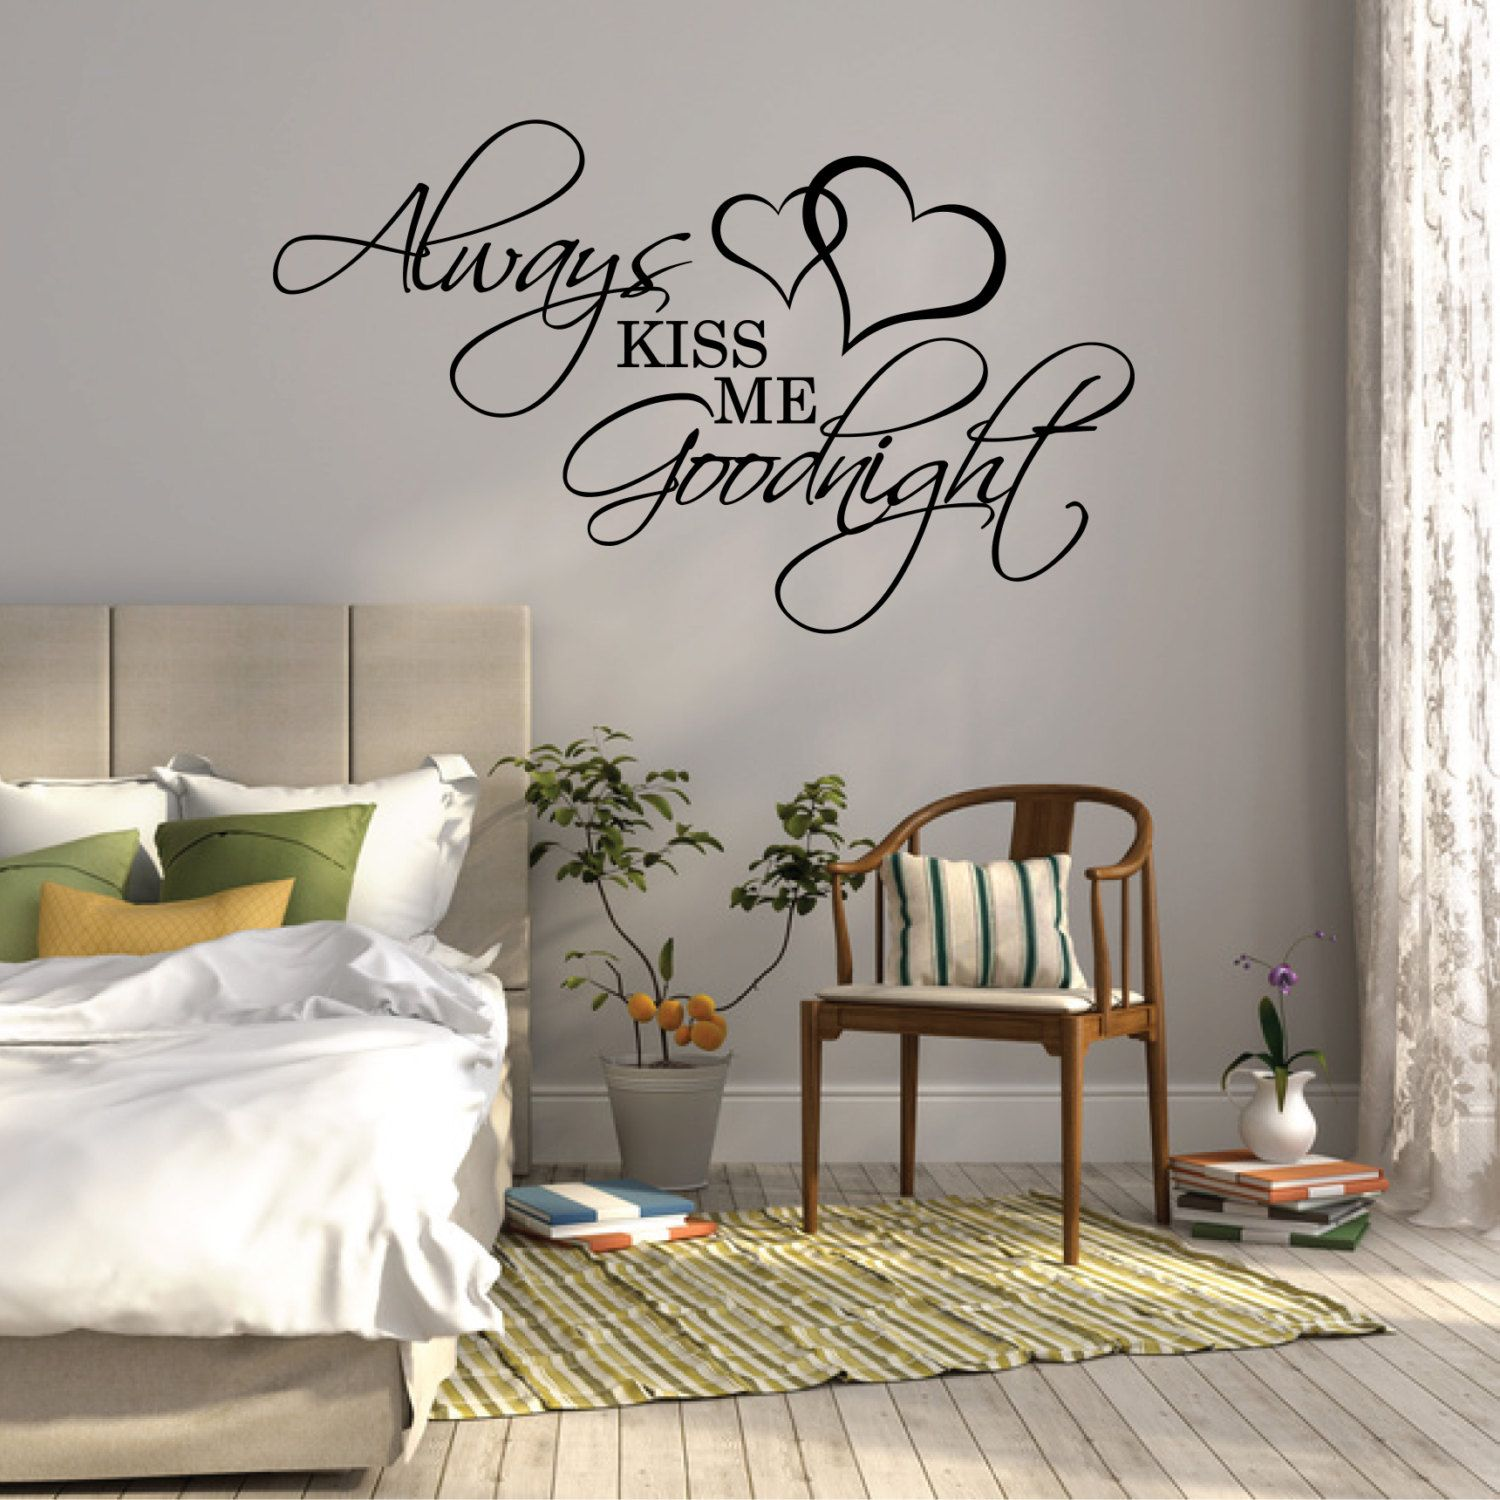 Wall sticker quote always kiss me goodnight over bed for Bedroom decorative accessories